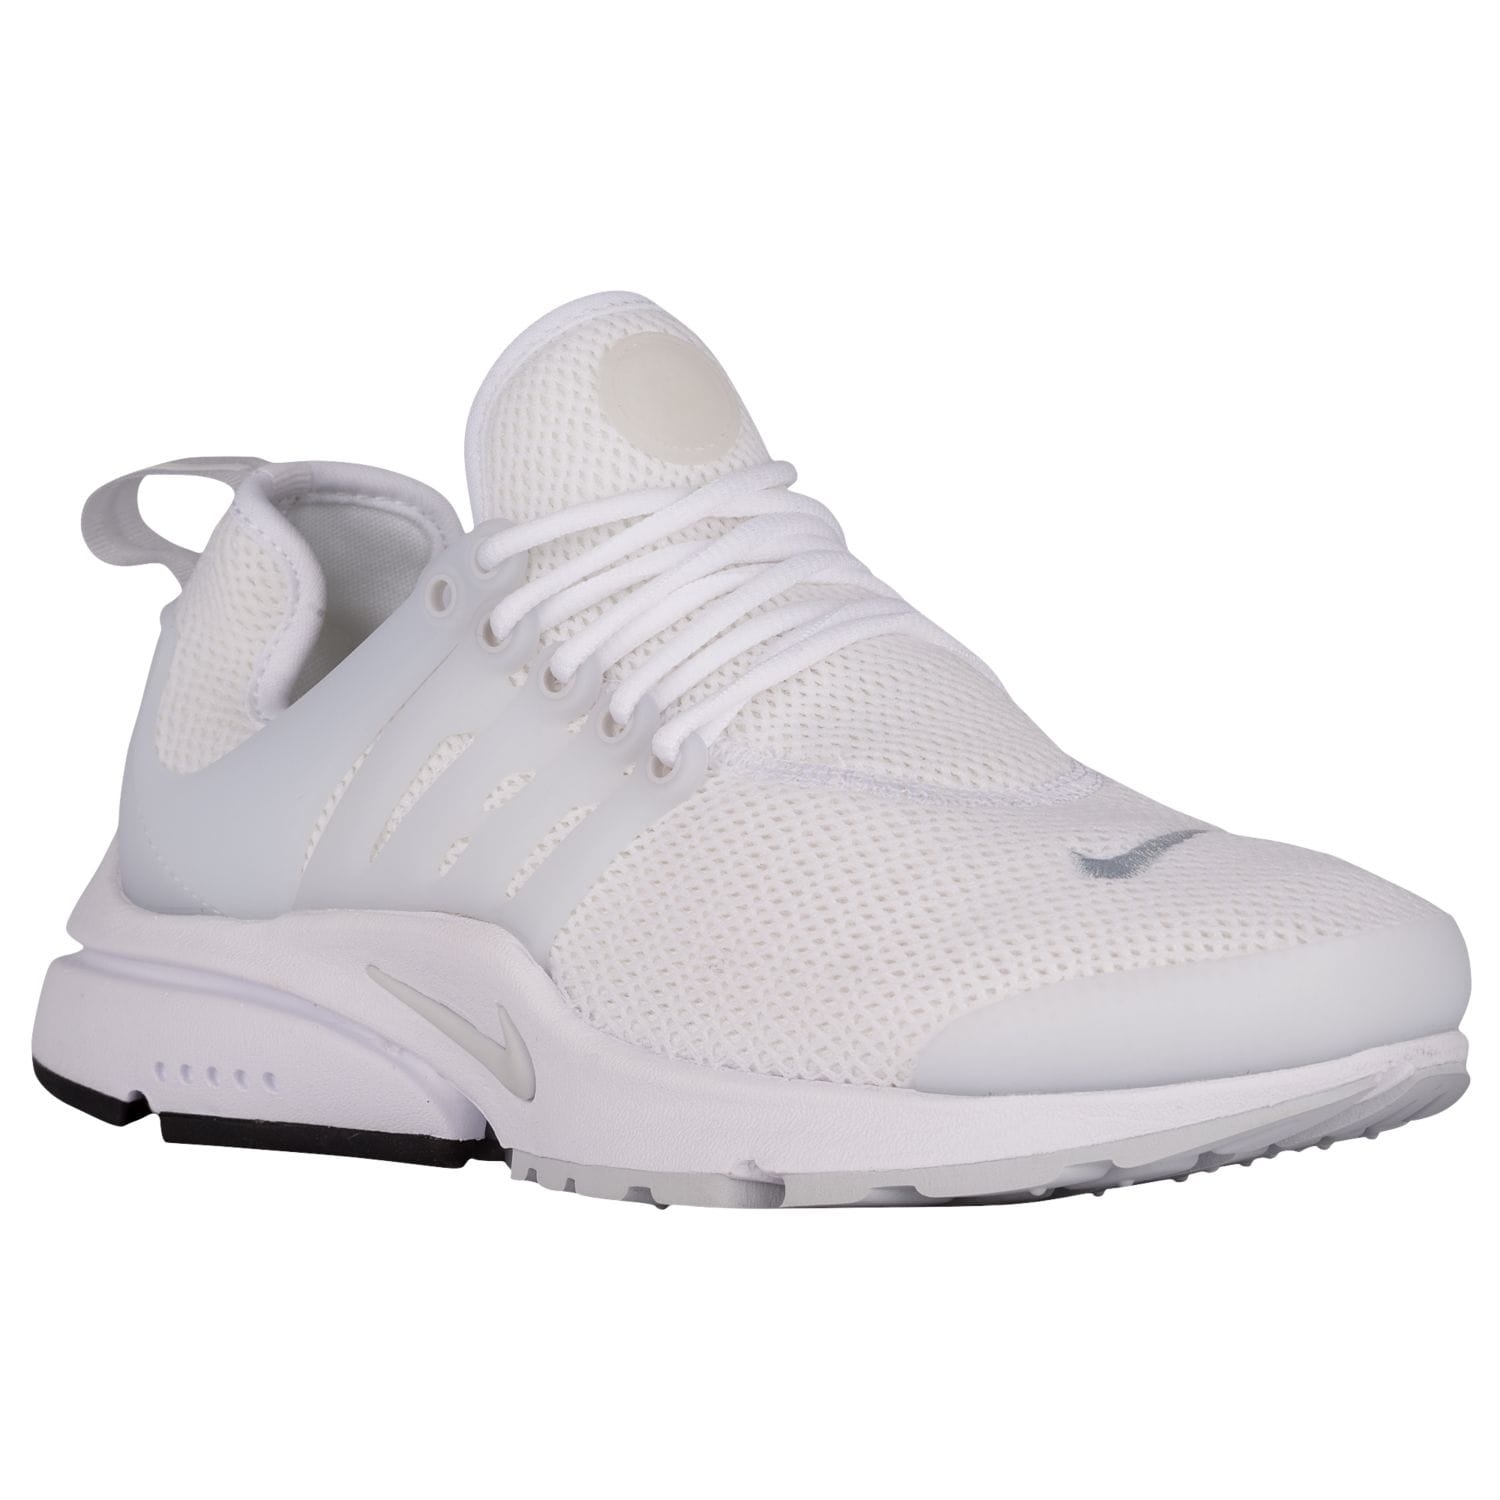 100% authentic 7f963 99be7 Nike Presto Womens : Nike × Men and Women's shoes 2018 ...